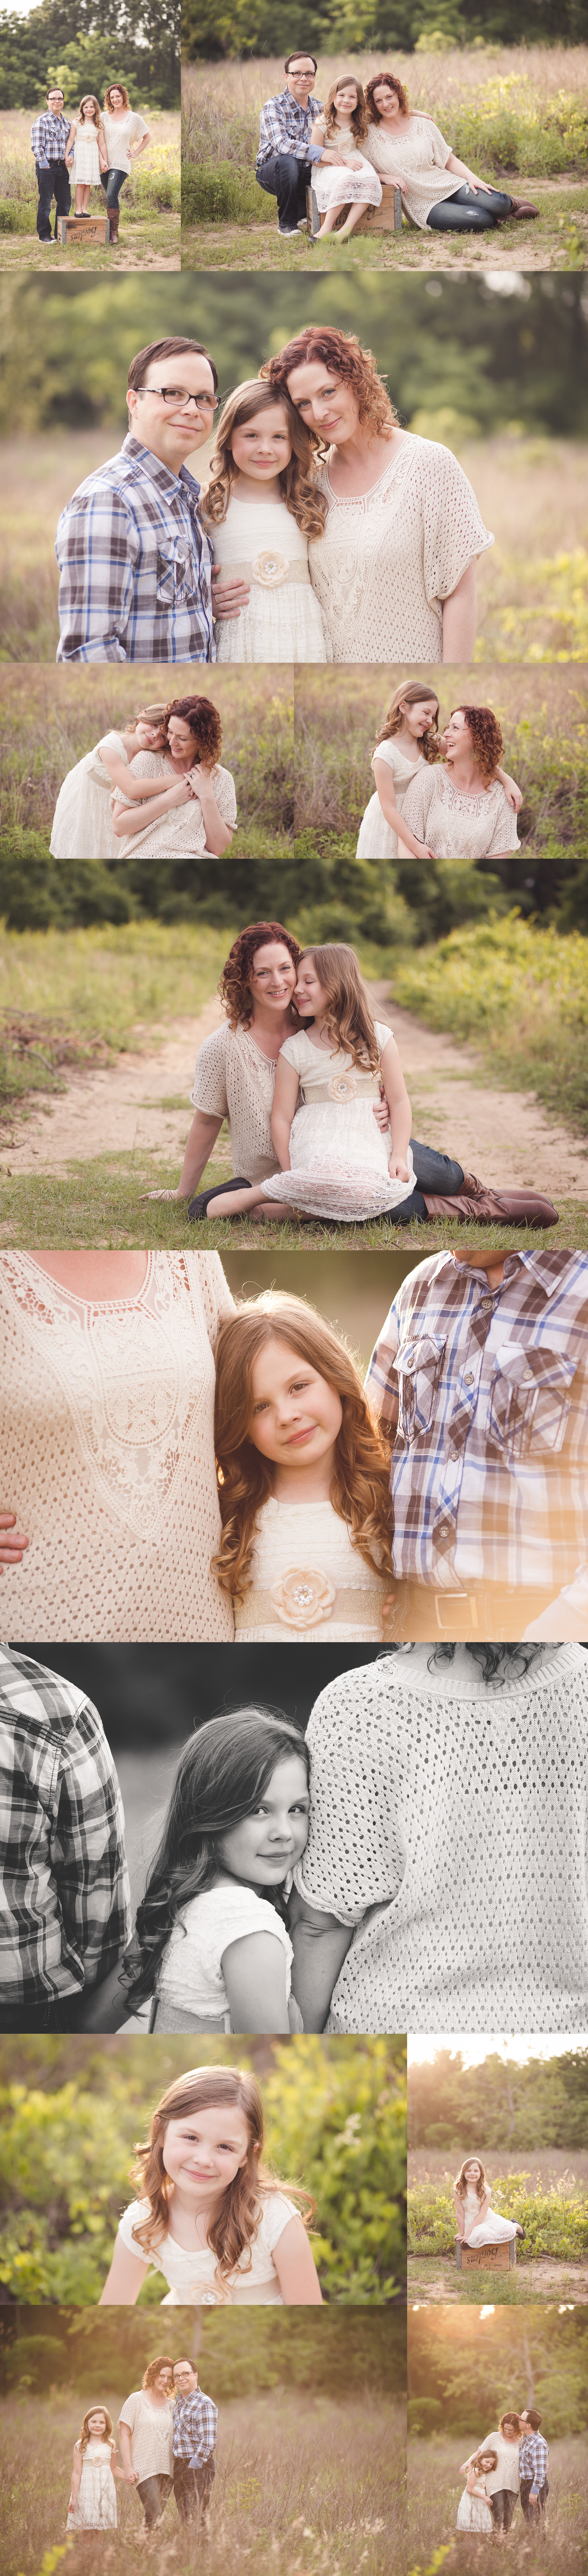 sunlit field family session {tavares family photographer}